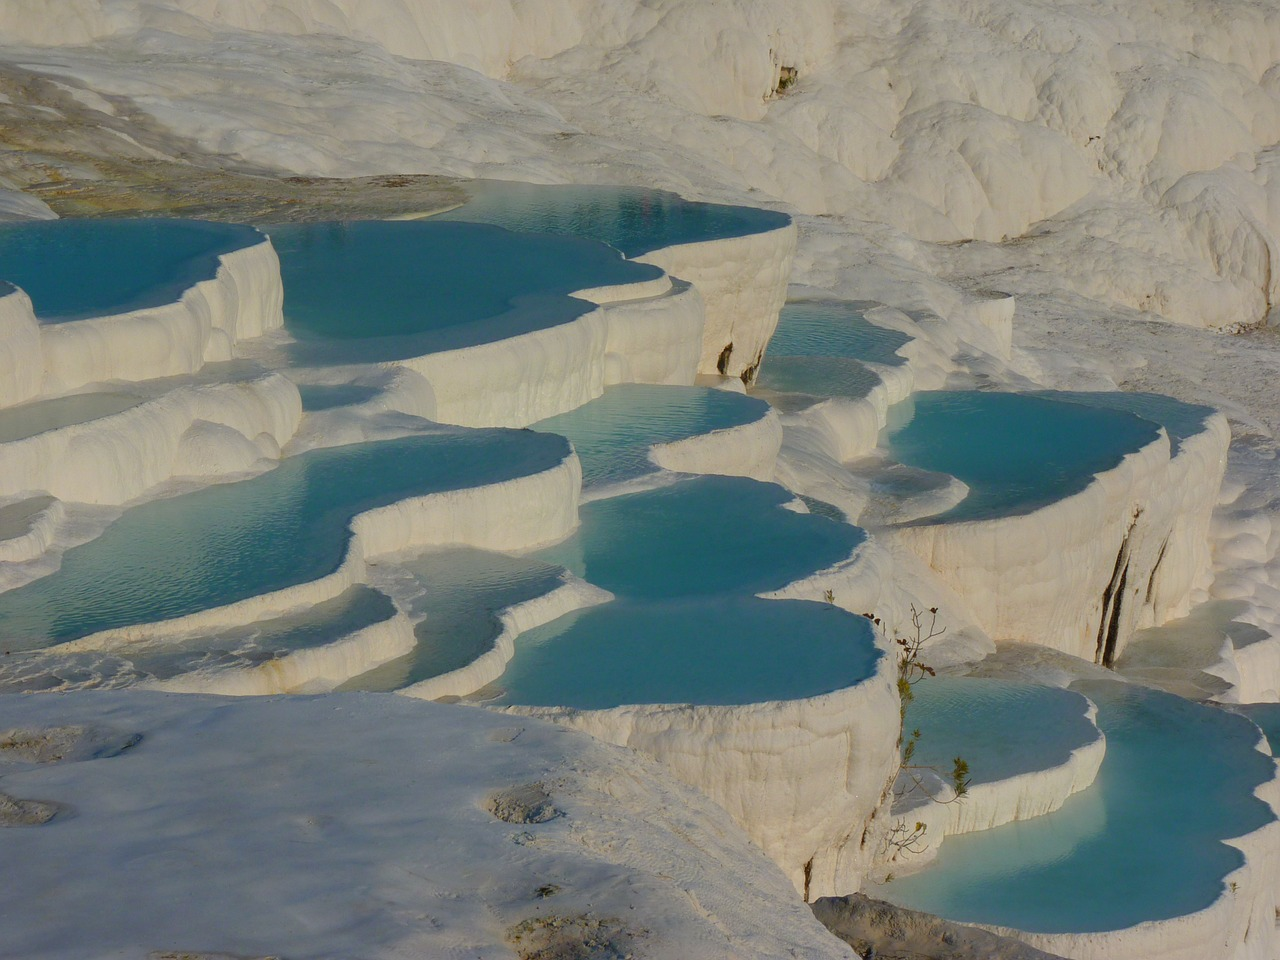 pamukkale lime sinter terrace sinterterrasse free photo